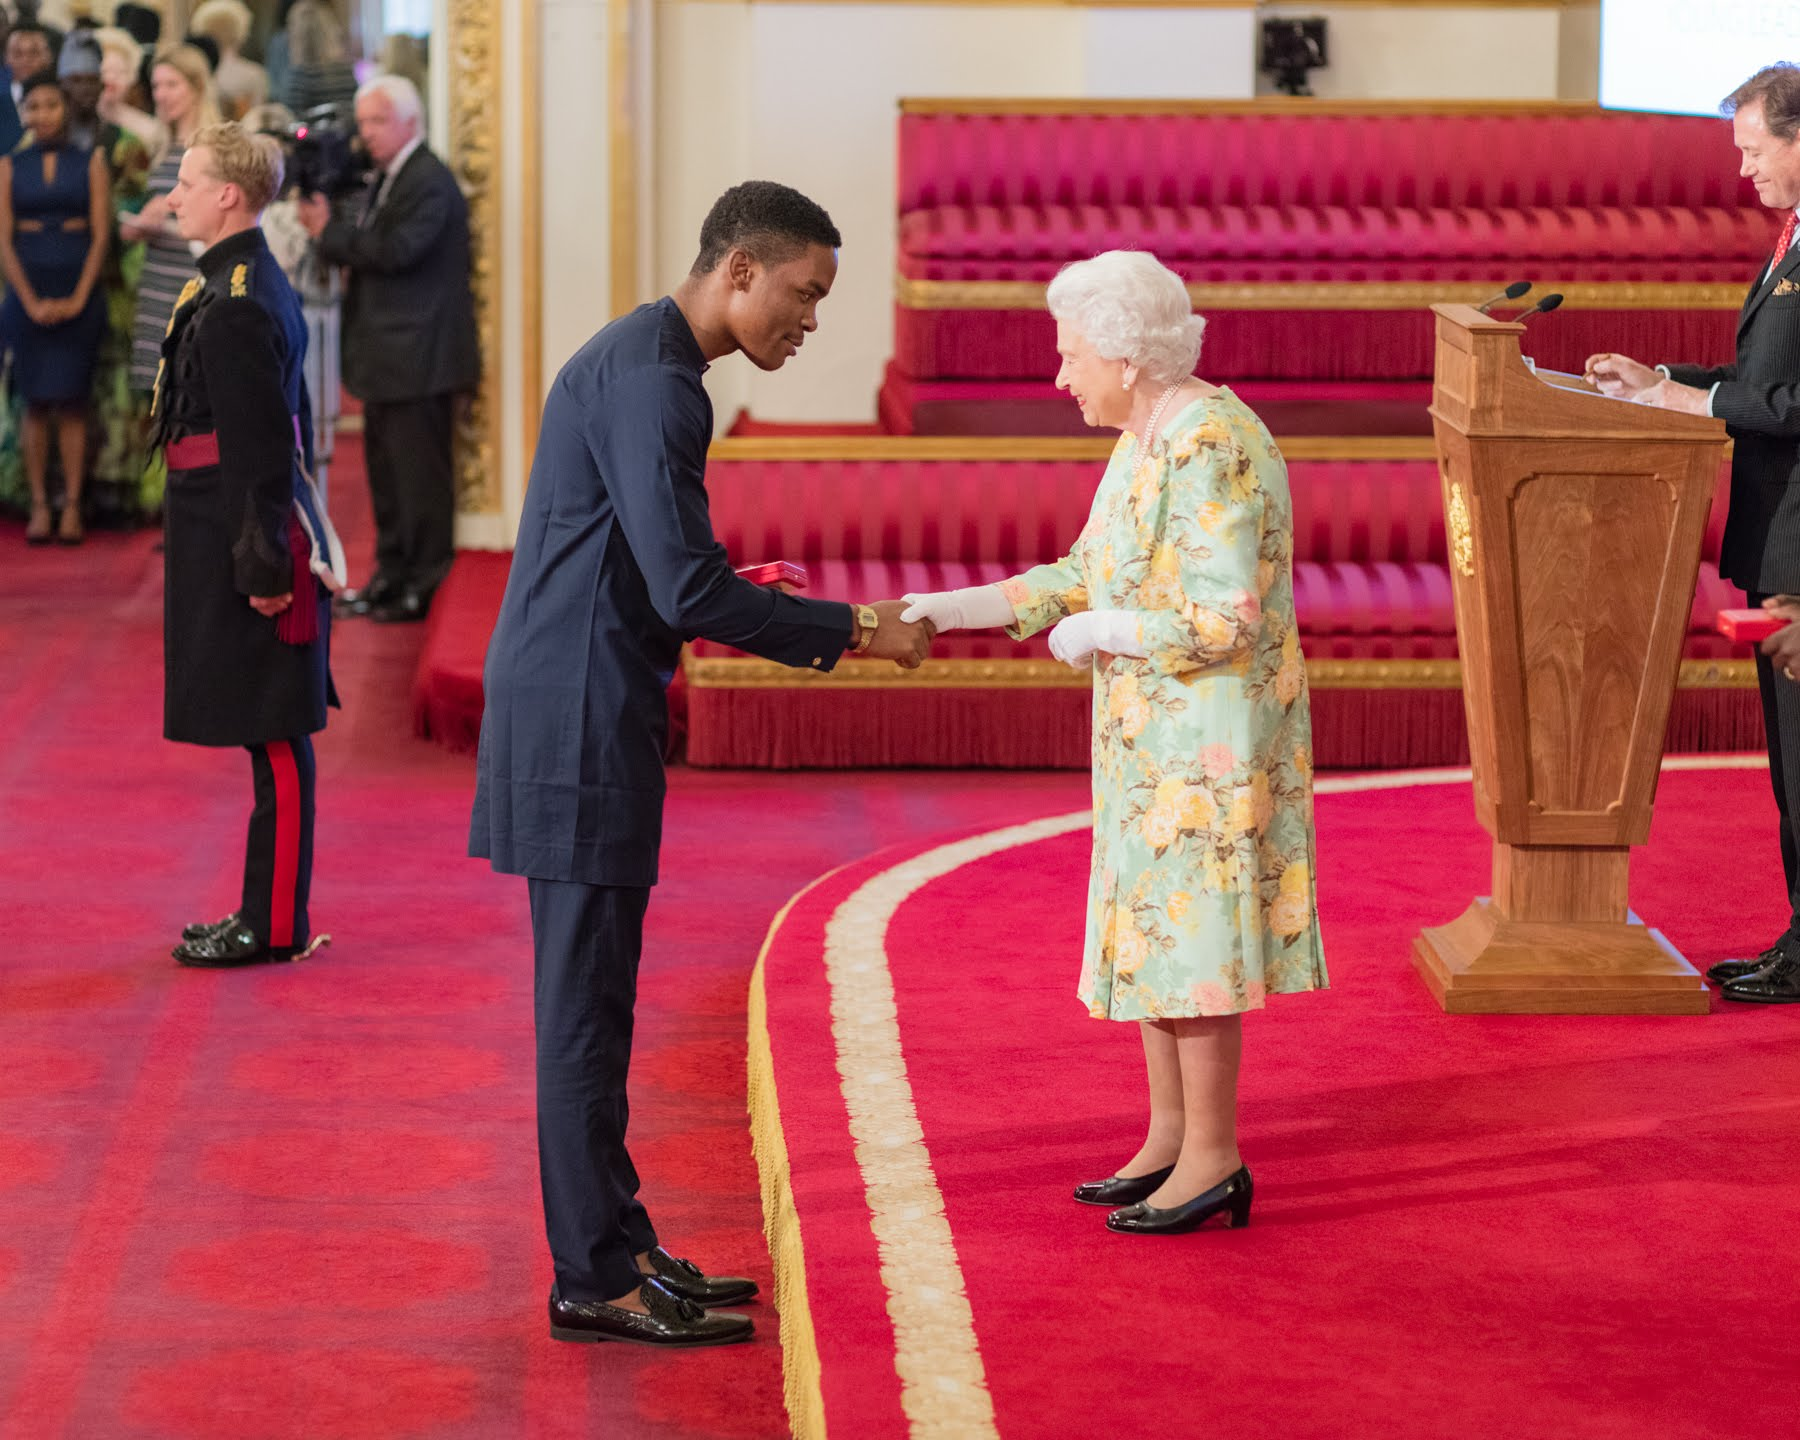 Kennedy Ekezie Joseph 2018 Queen's Young Leader from Nigeria